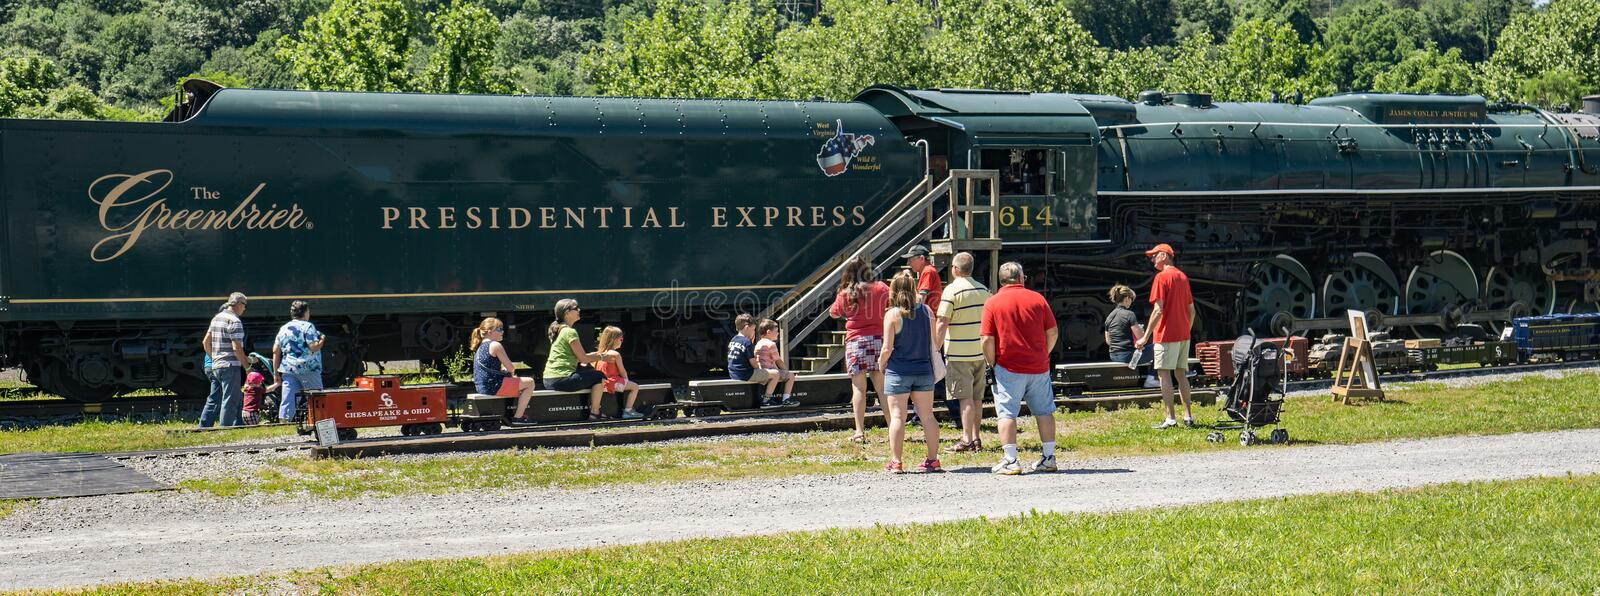 Miniature C&O Train Ride. Clifton Forge, VA – June 3rd: Children enjoying a miniature C&O train ride with the Presidential Express in the background at royalty free stock image